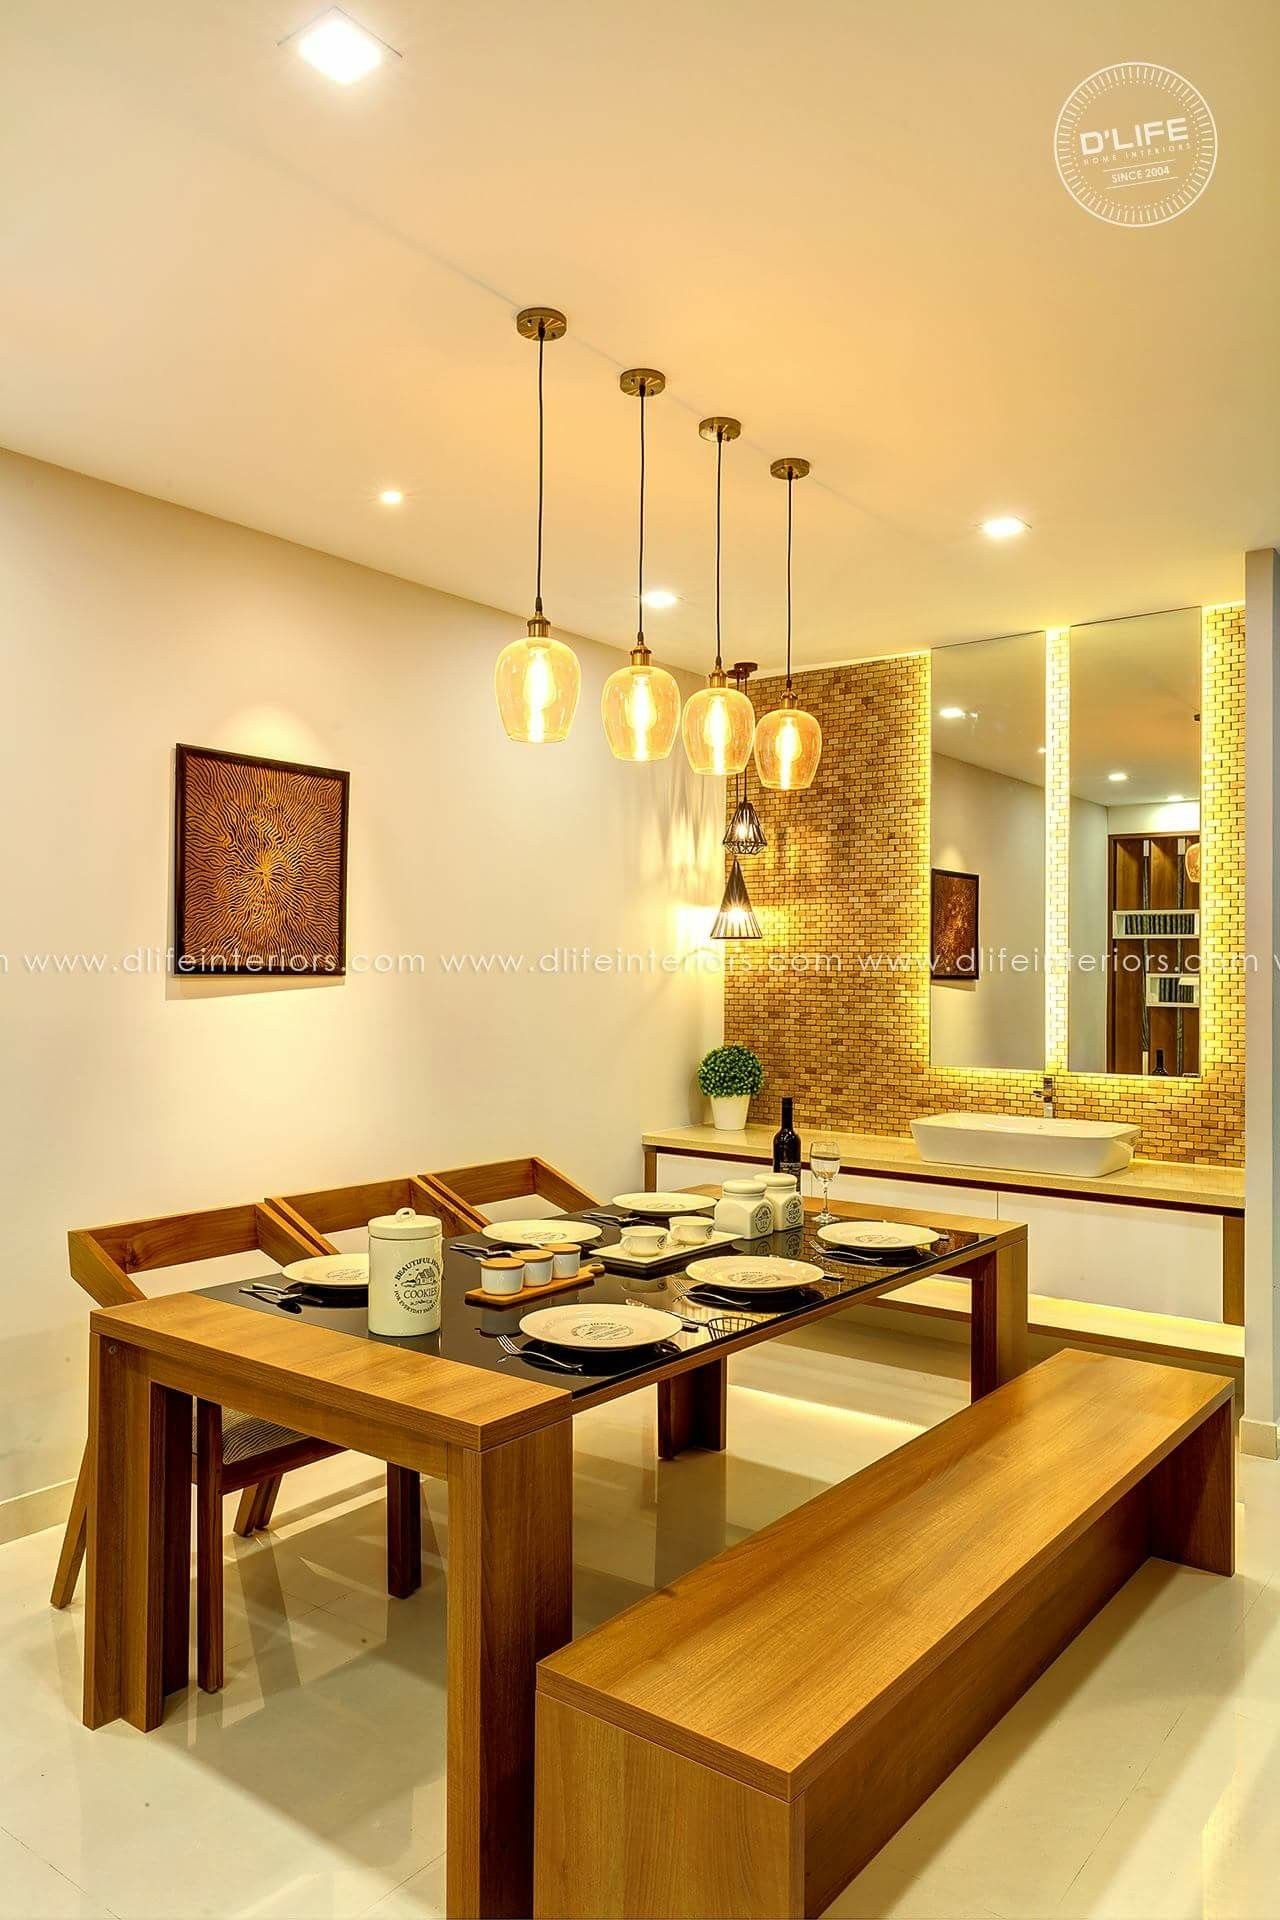 Dining Table Dining Room Table Decor Kitchen Interior